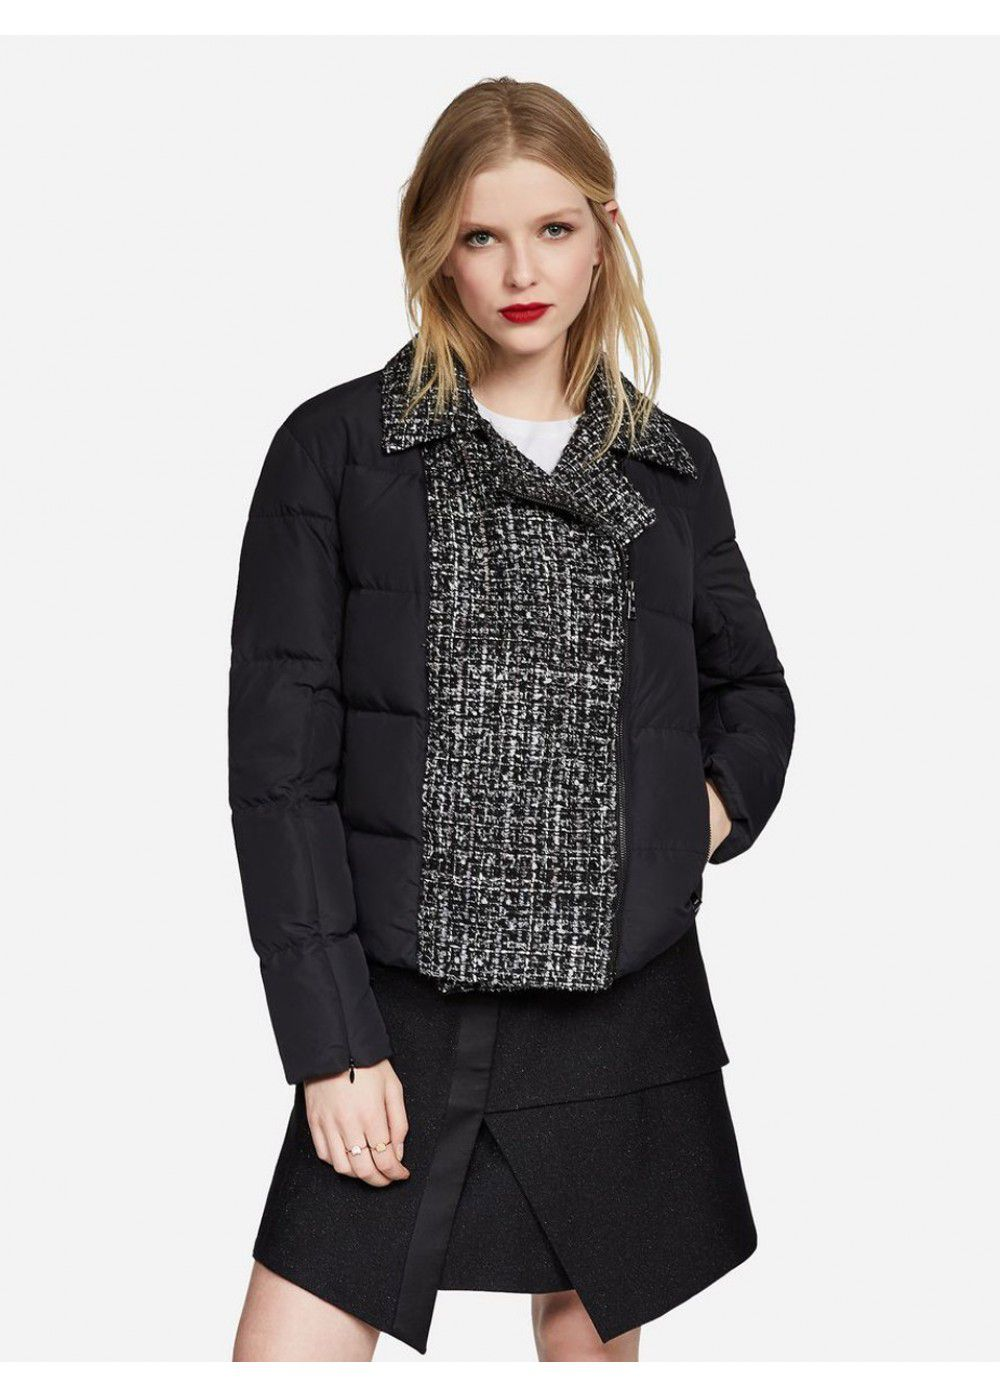 Karl Lagerfeld Boucle and Nylon Jacket